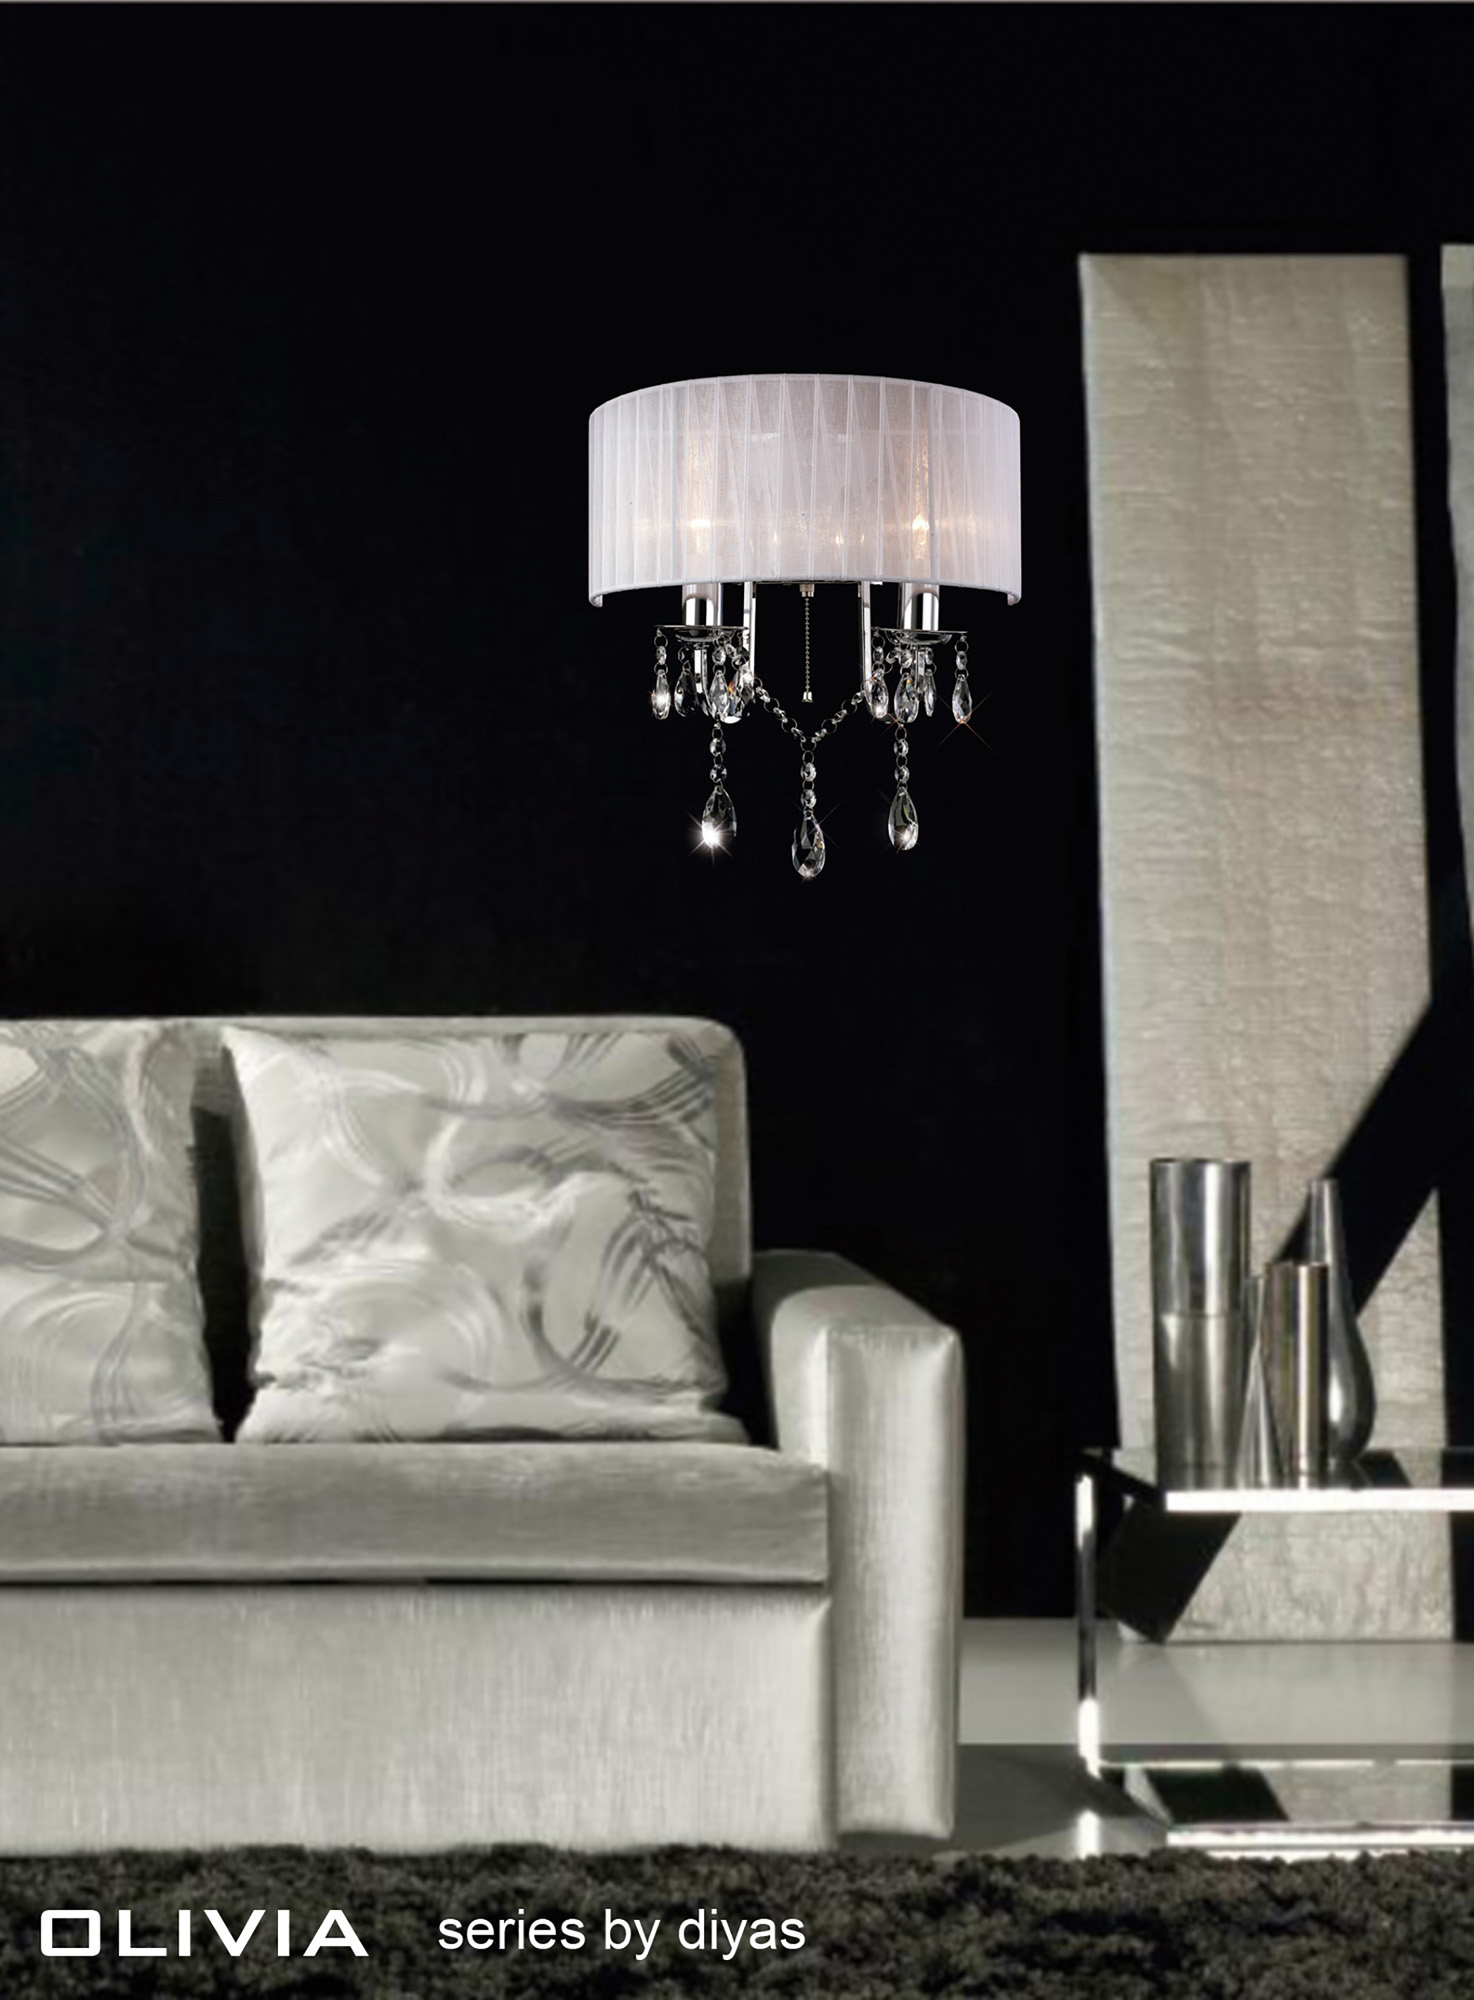 Olivia Crystal Floor Lamps Diyas Contemporary Crystal Floor Lamps